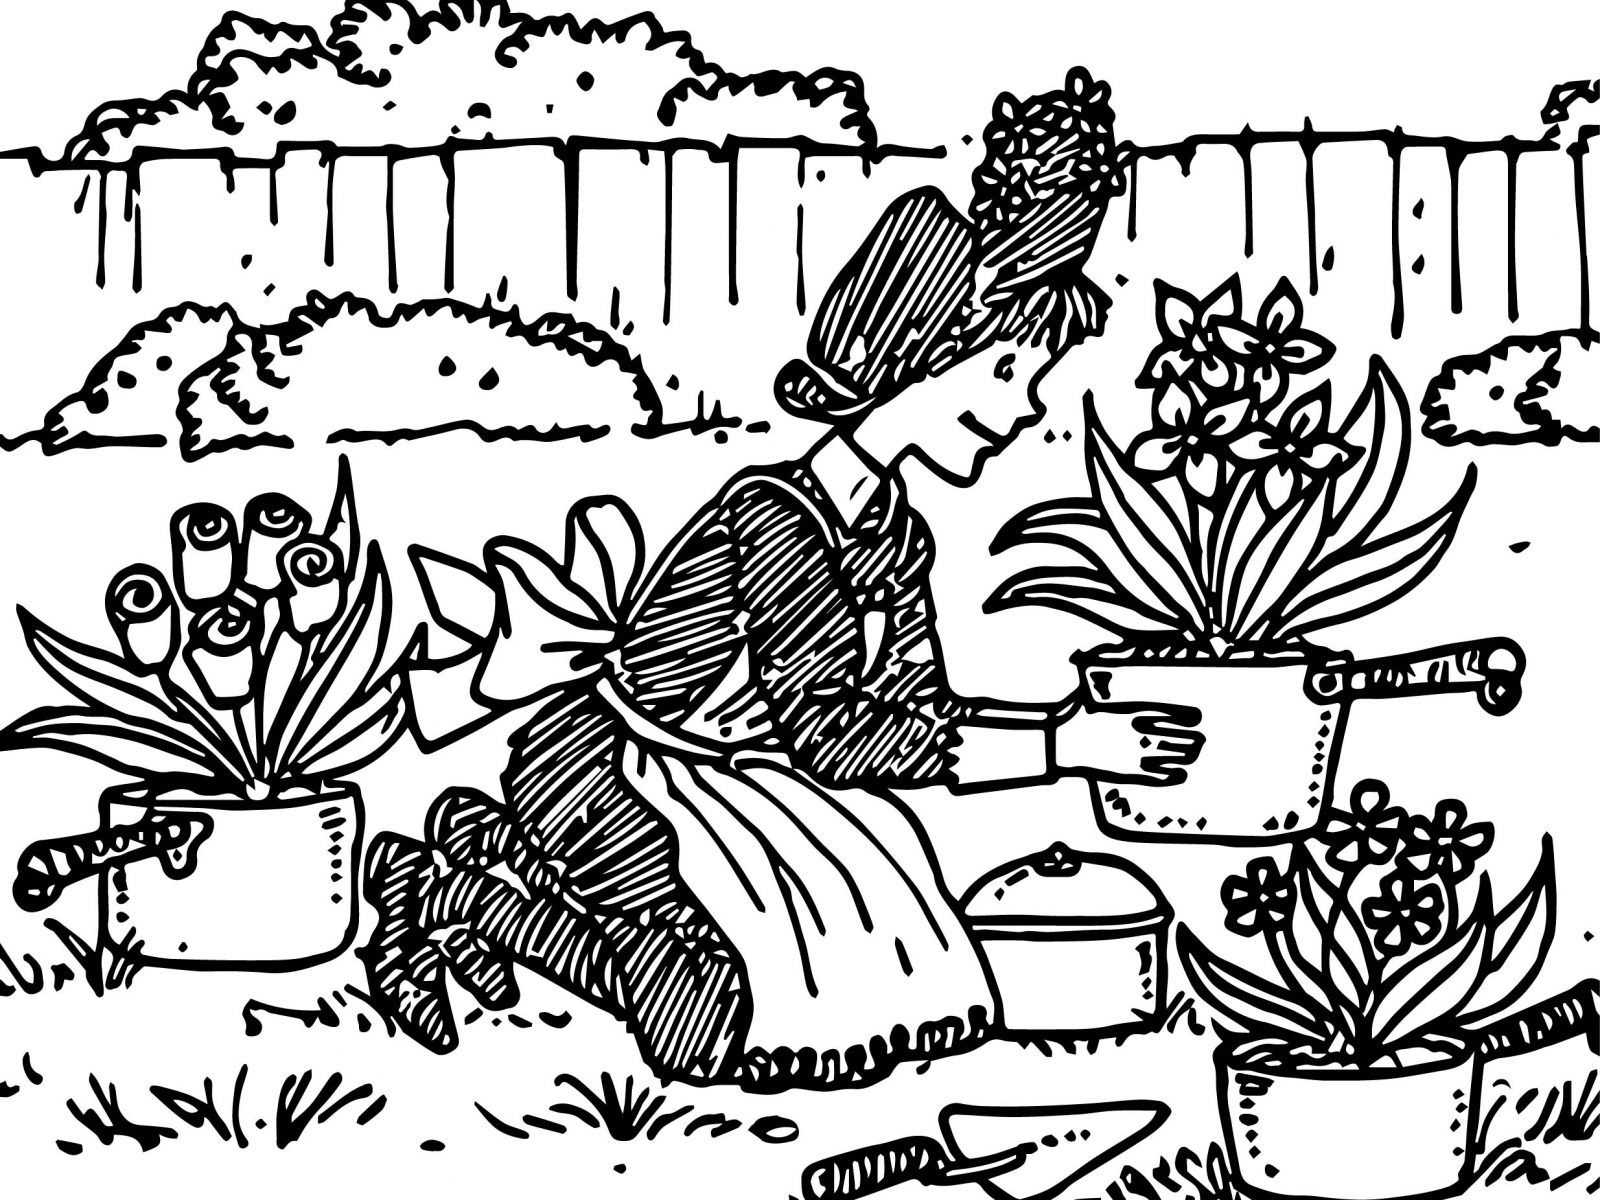 1600x1200 Appealing Amelia Bedelia Coloring Printables Of Flower Collage